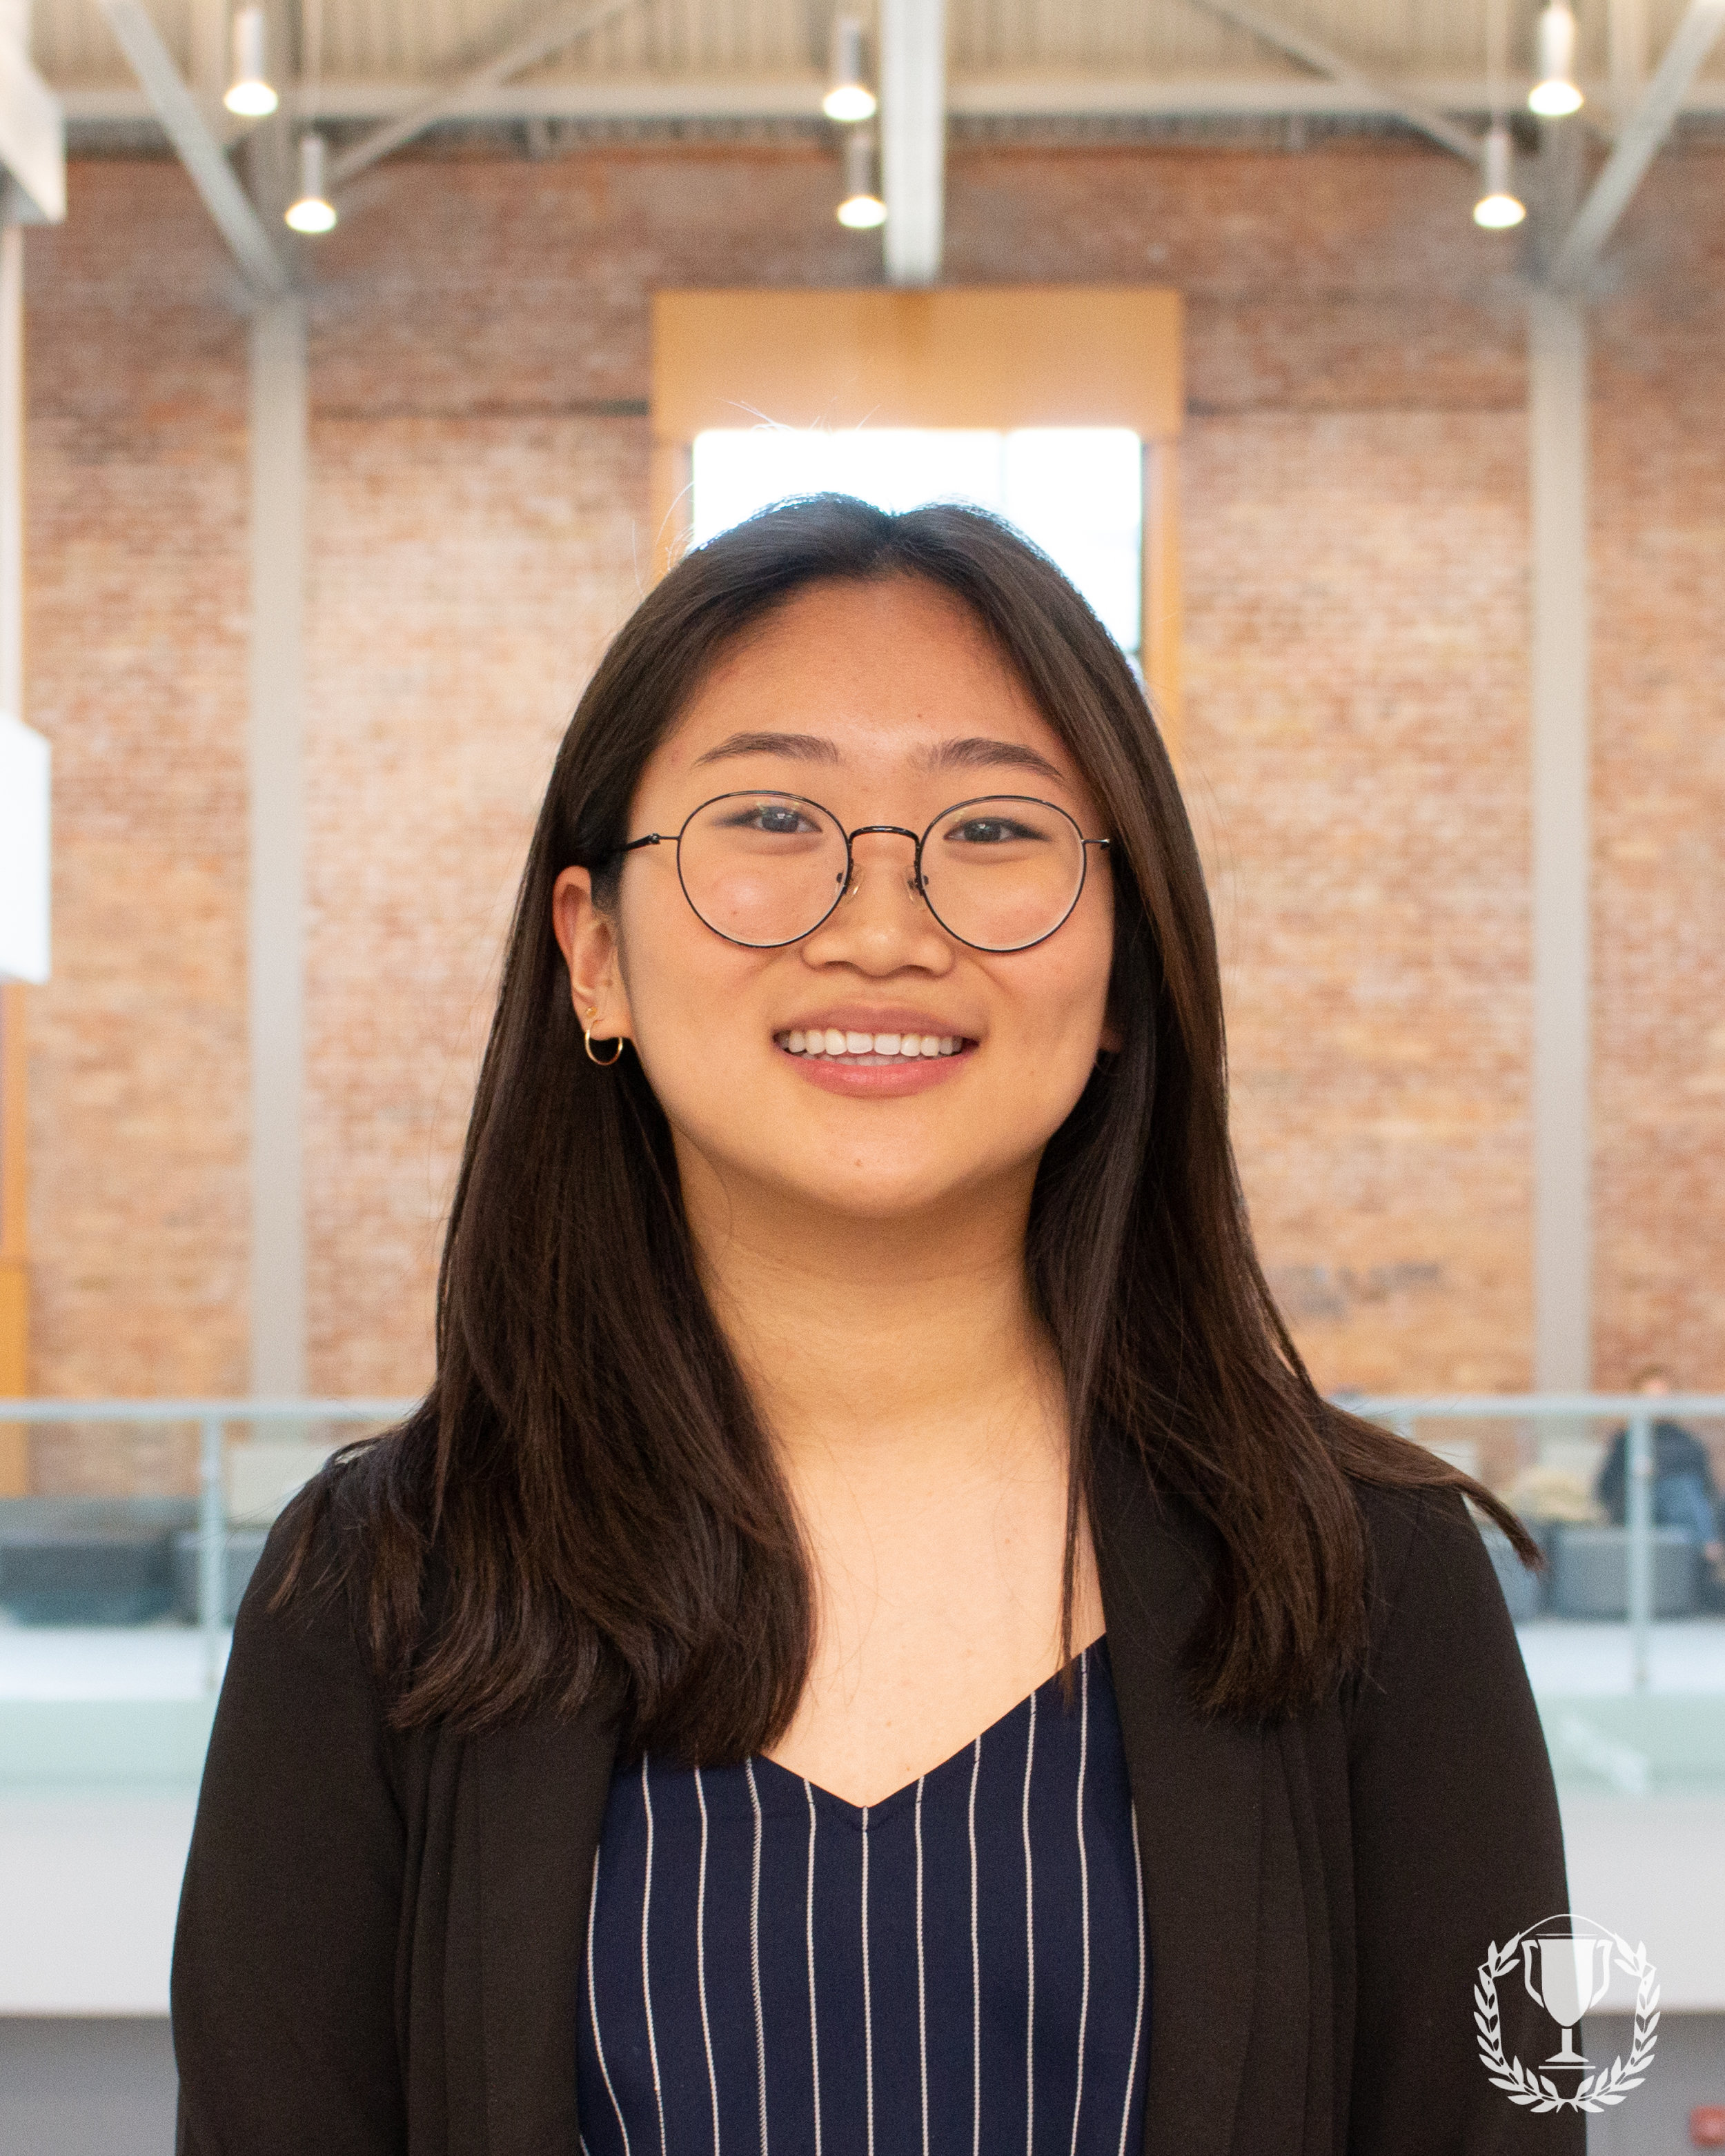 Jessica Ryu - University Liaison   Jessica is thrilled to be joining I.C.B.C. in its 42nd year of success, as the new University Liaison. She looks forward to meeting and working with all the incoming schools, faculty advisors and competitors from around the world. When she isn't replying to emails, you can find Jessica laughing at nothing, vlogging her life or sleeping.